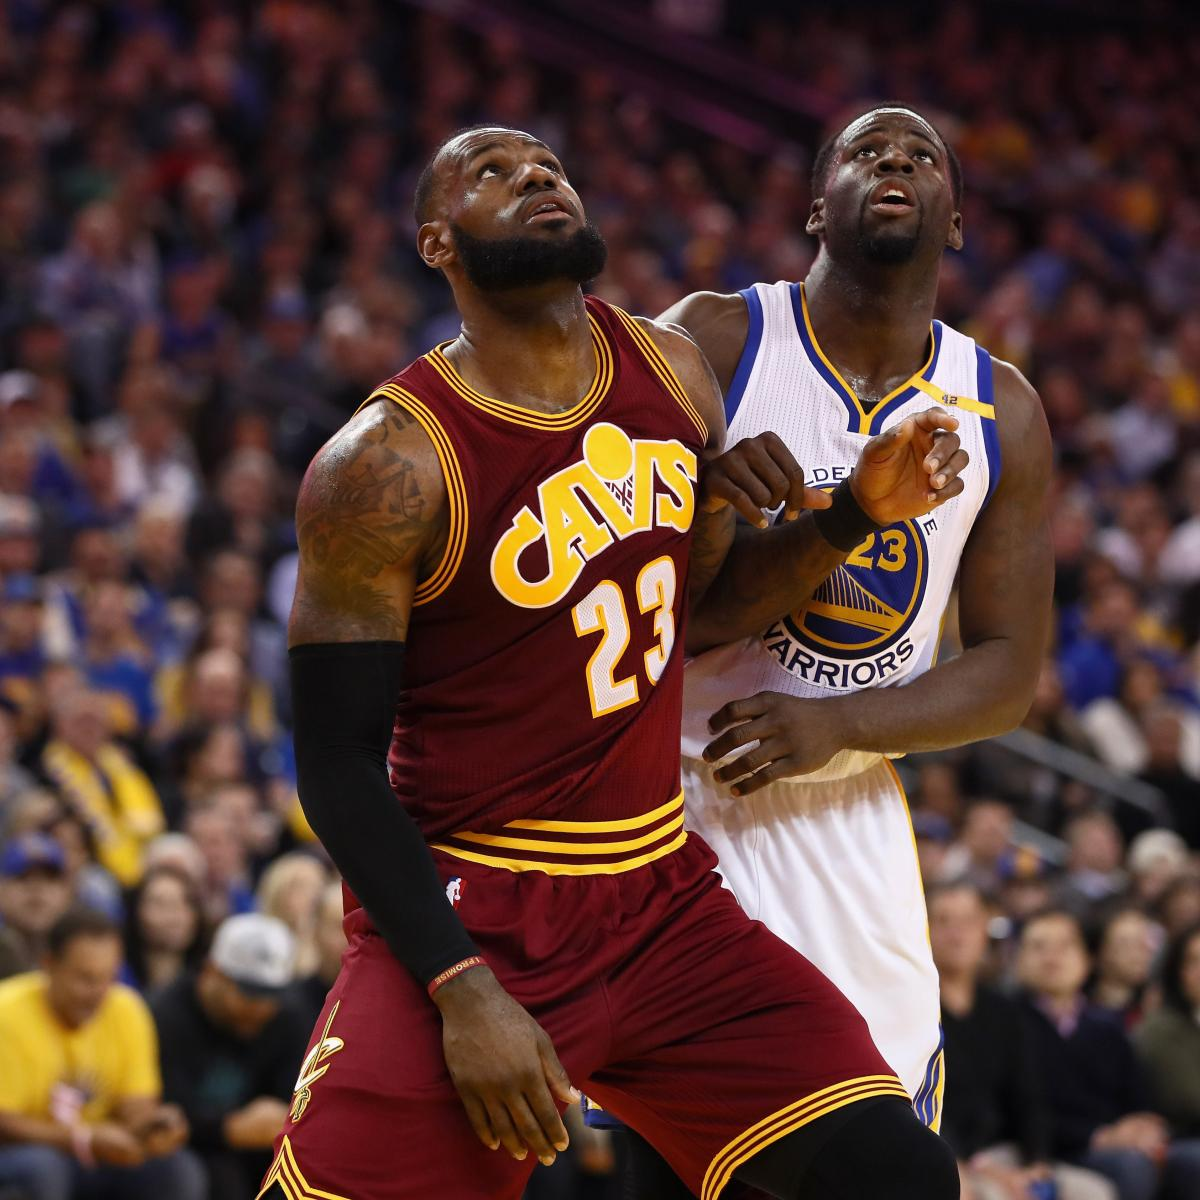 Warriors Vs Pelicans Game 3 Live Stream Free: NBA Playoff Schedule 2017: How To Watch NBA Finals On TV